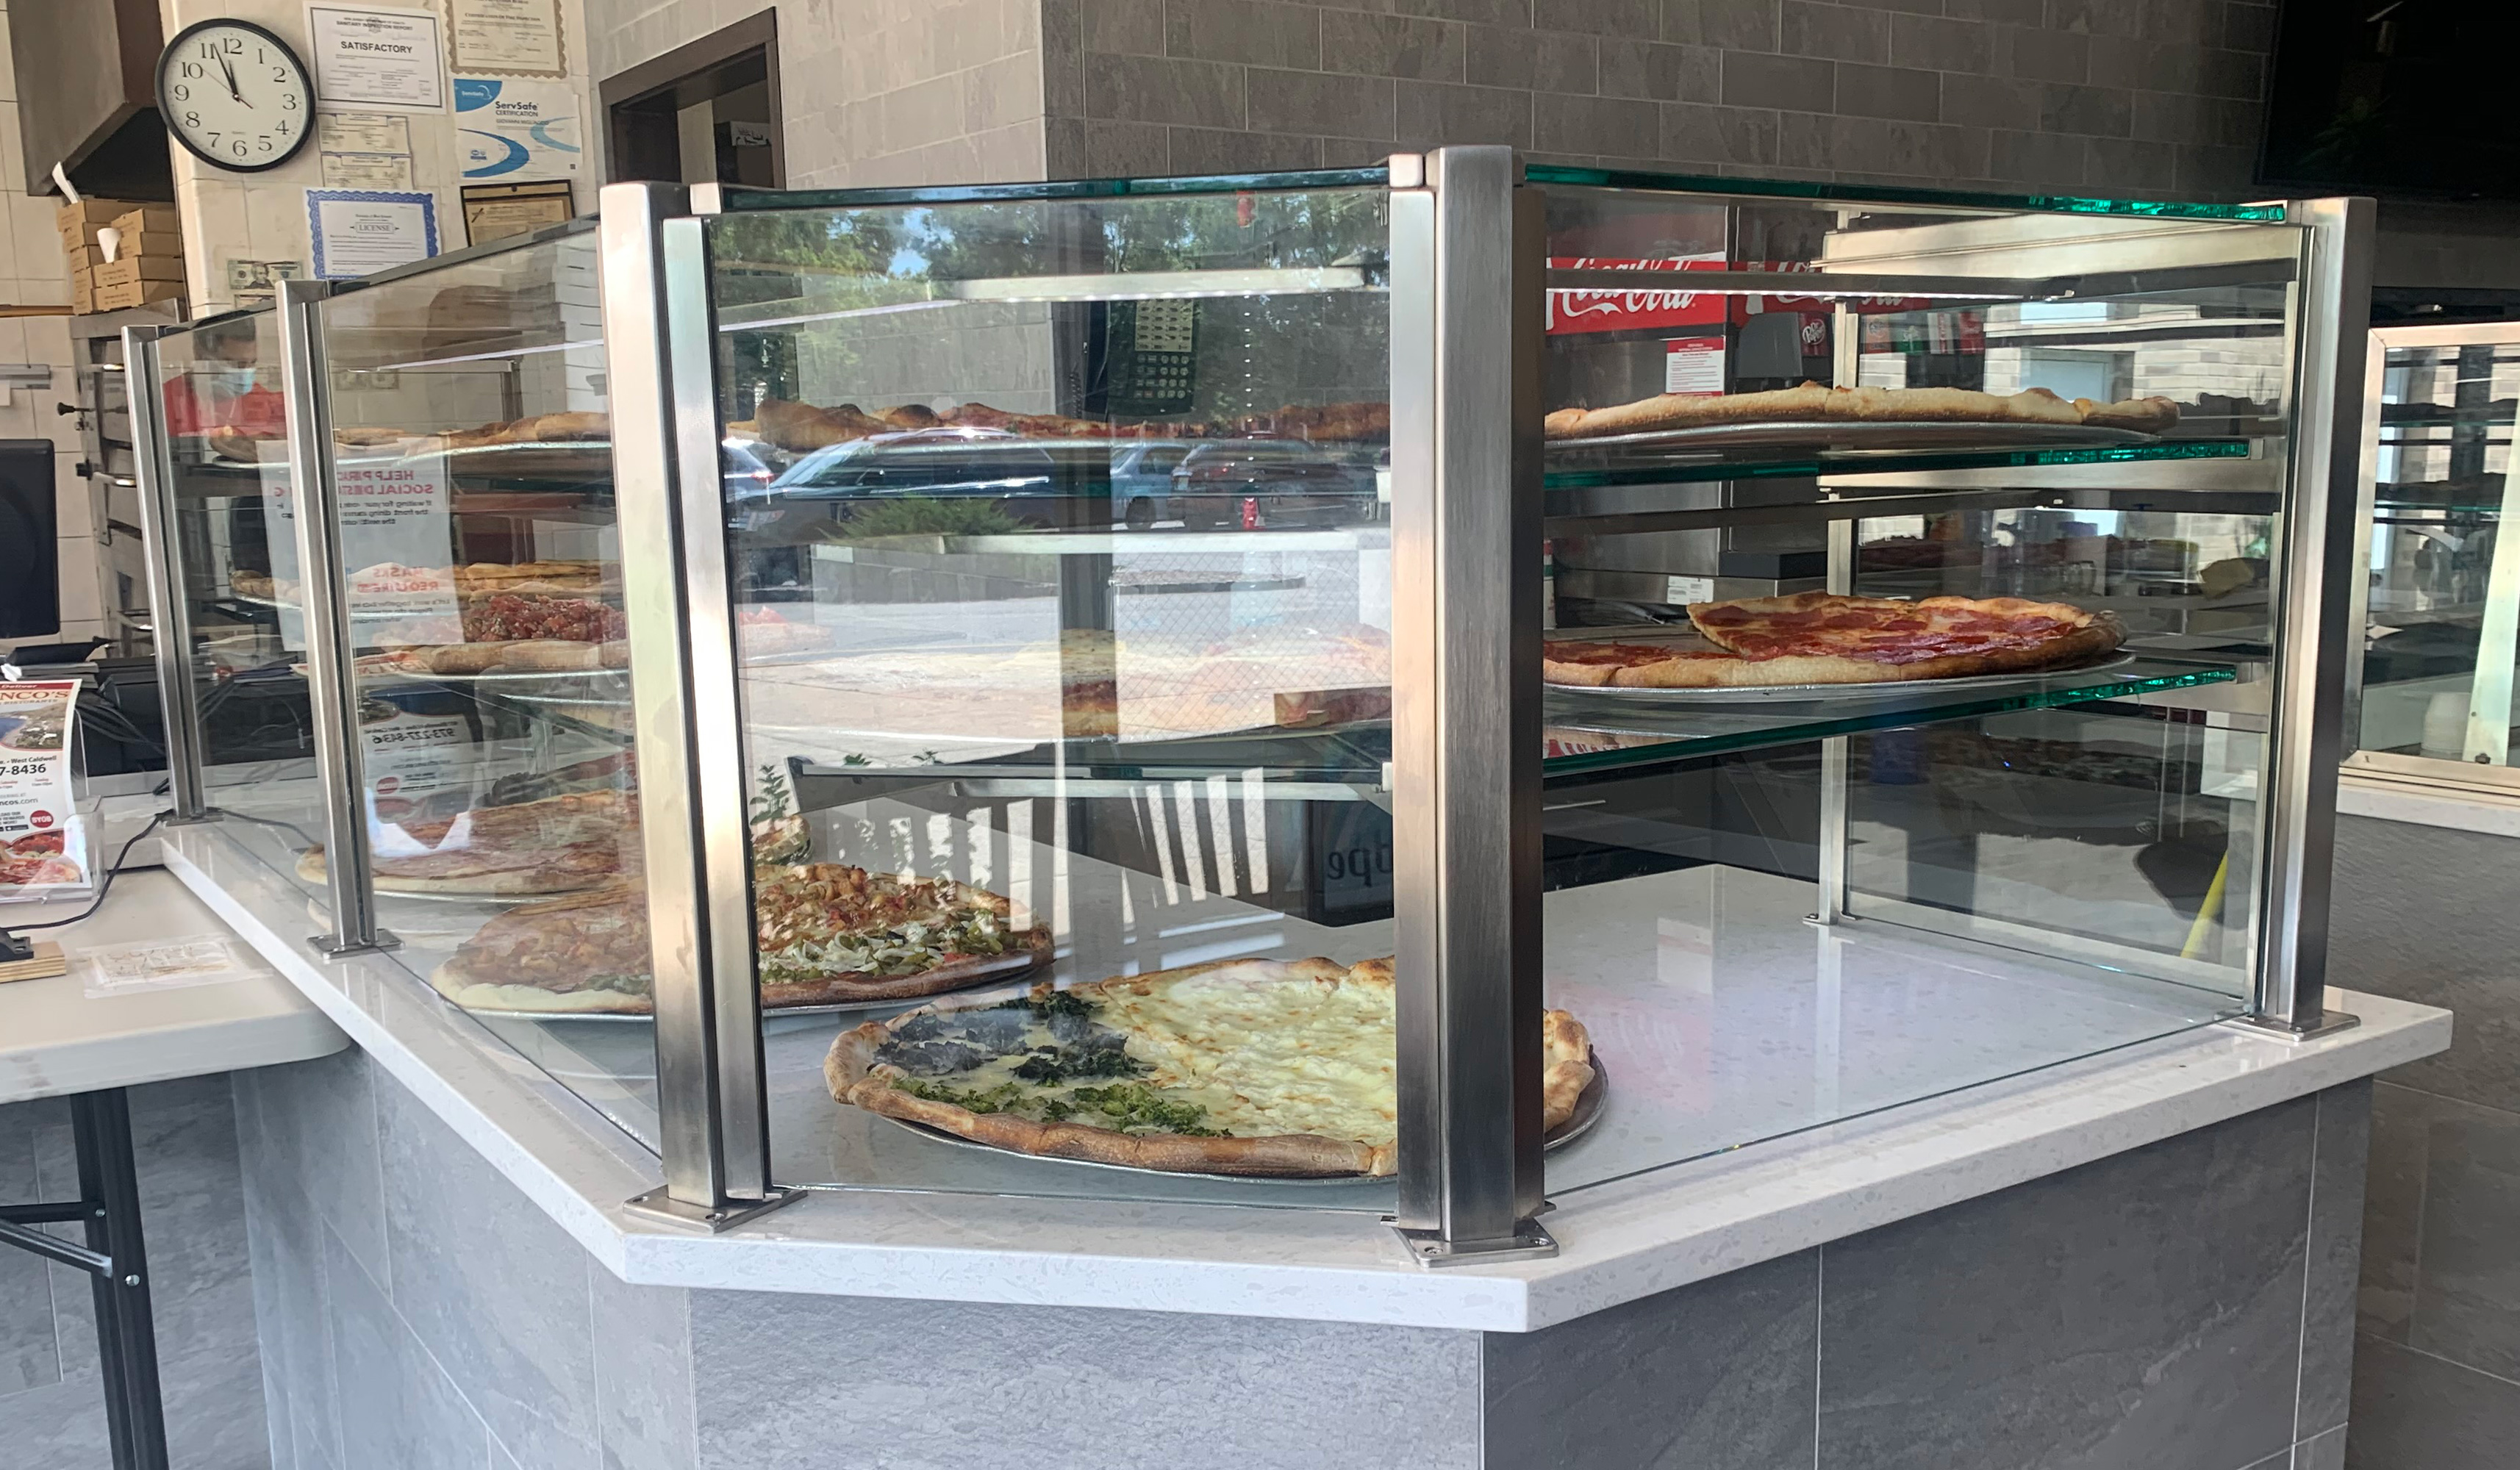 Satin Stainless Steel Food Shields with LED Lights | Franco's Pizza - West Caldwell, NJ